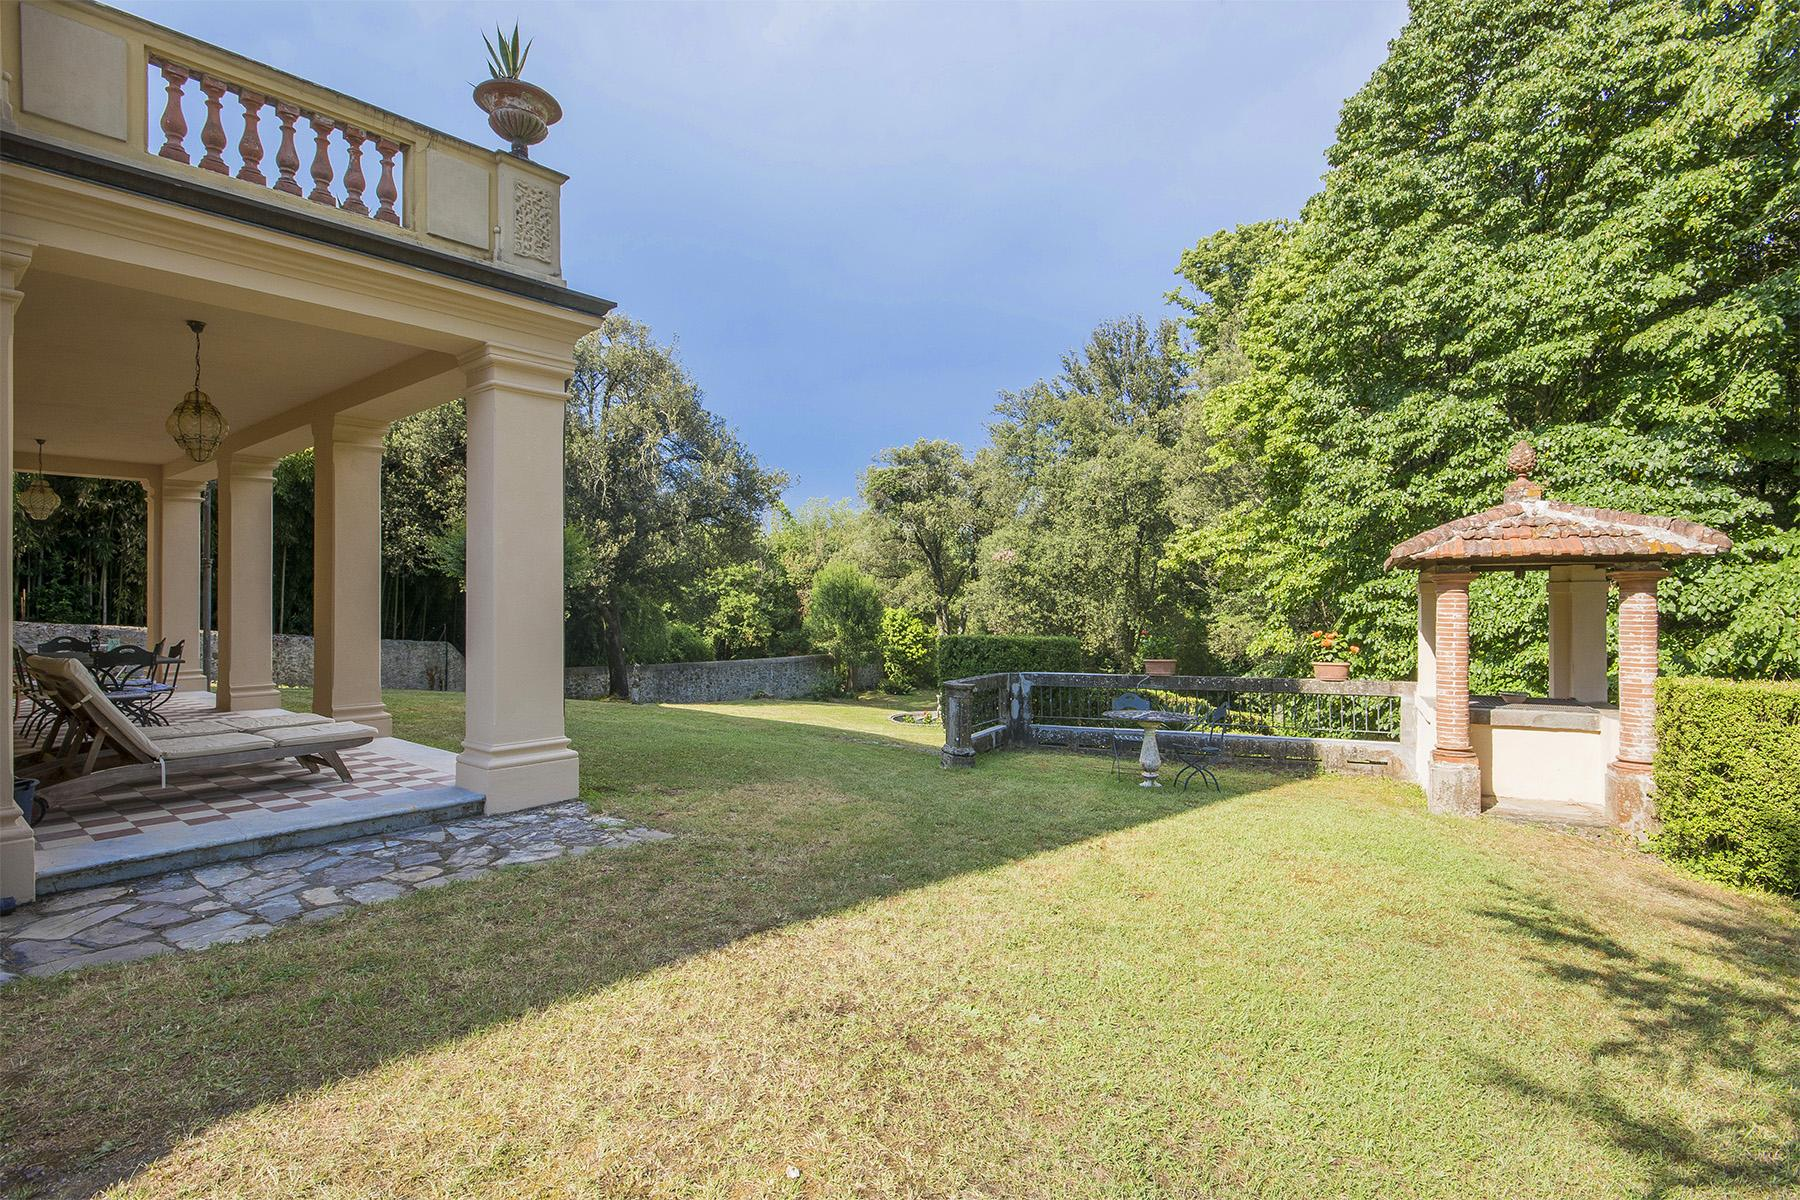 Beautiful XIX Century period villa with park near Lucca - 14